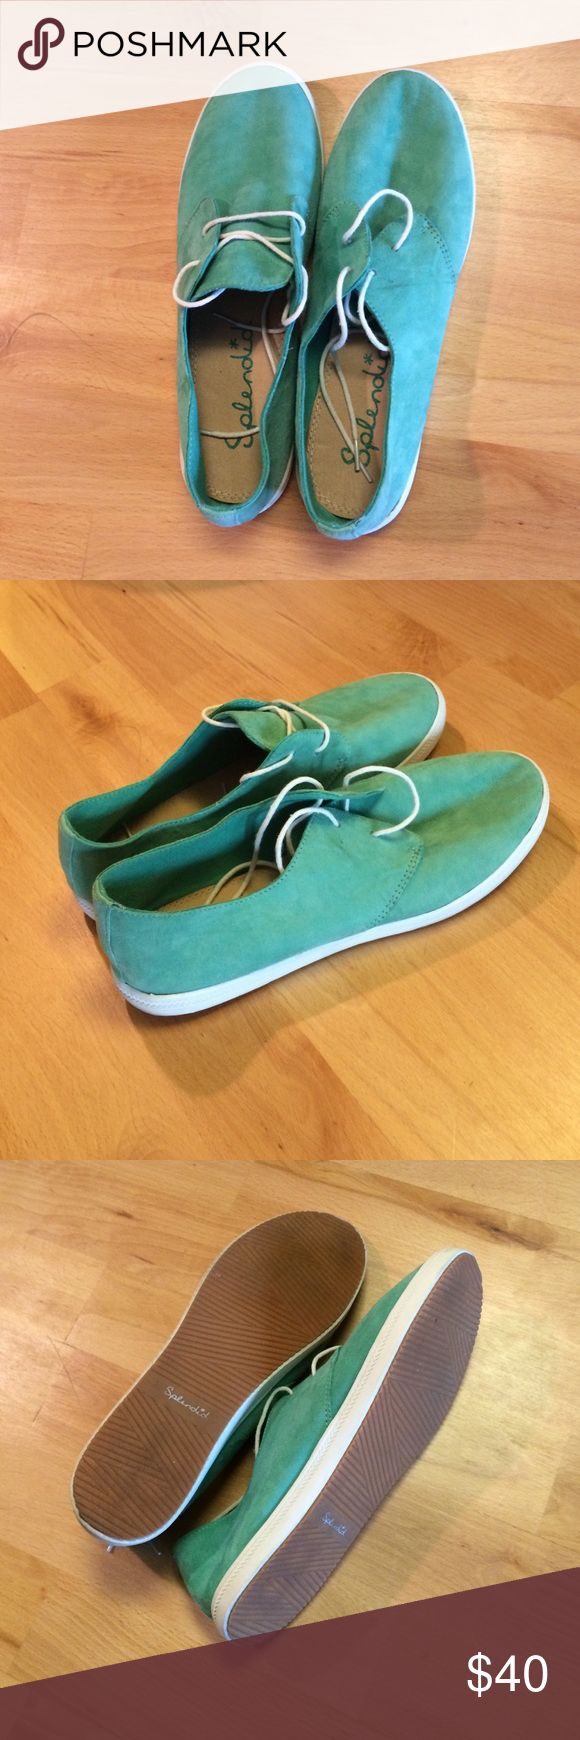 Splendid Shoes Never worn! Cute sneakers for any outfit! Fit true to size. Adorable mint green color. Splendid Shoes Sneakers